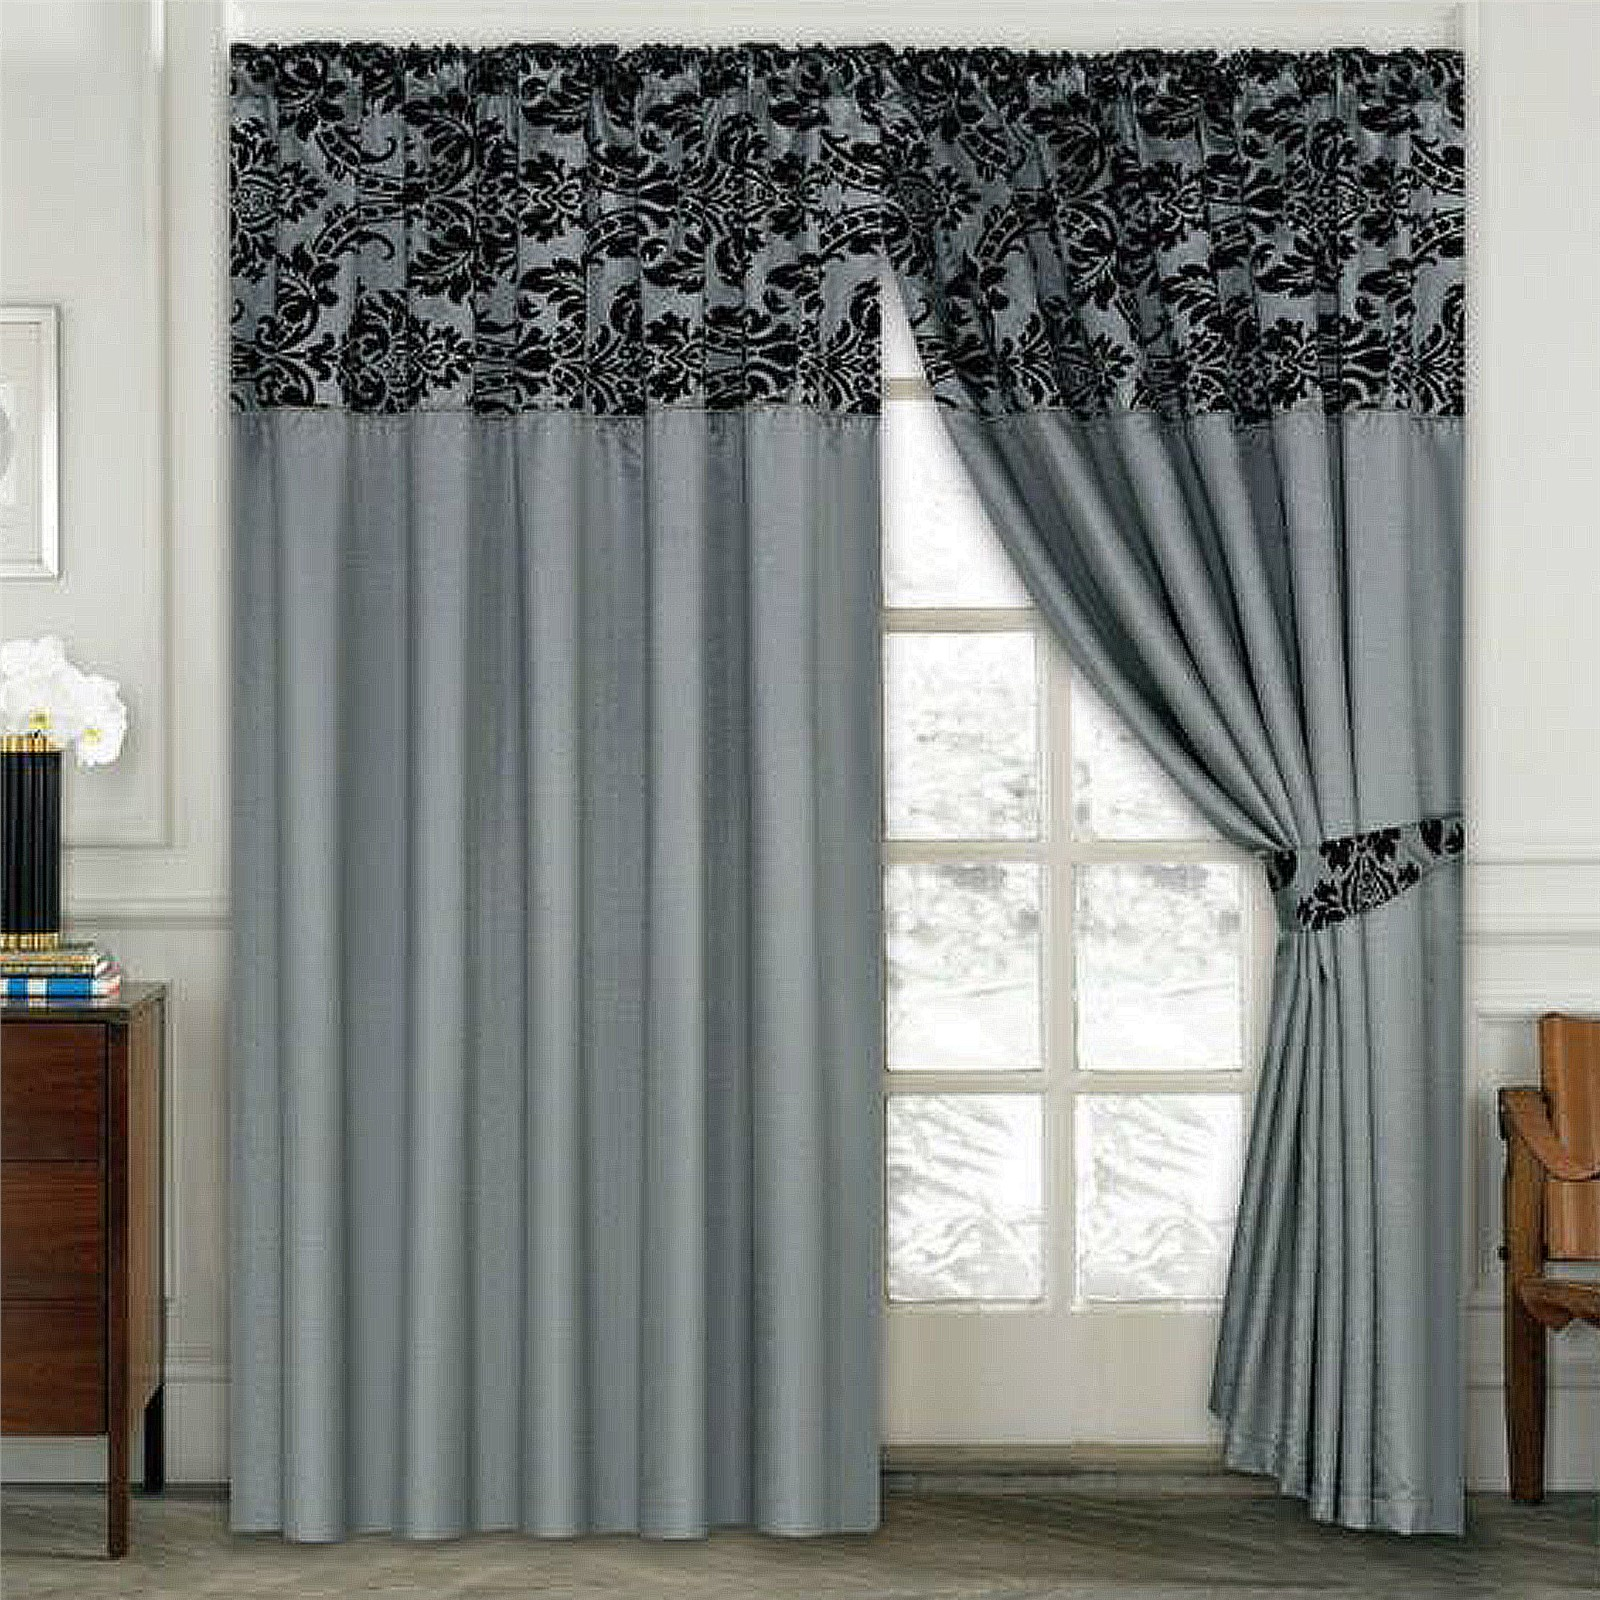 Fire Resistant Curtain Retardant Stage Curtains Smoke Firefly